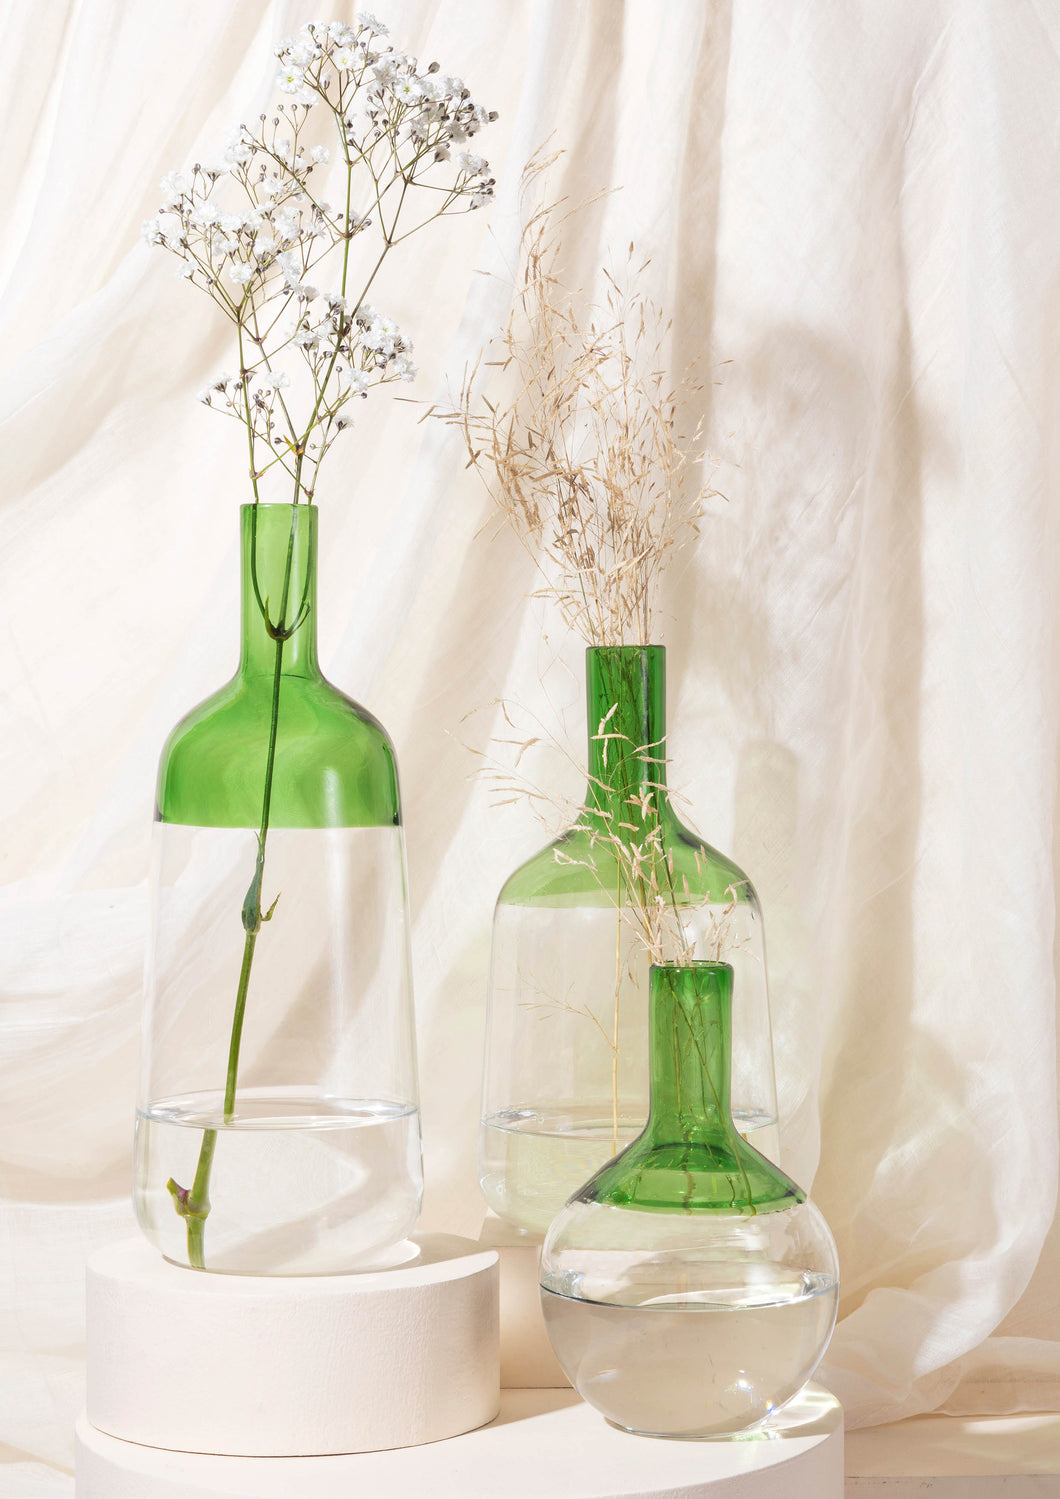 Iris vase - Green - Small | Medium | Big